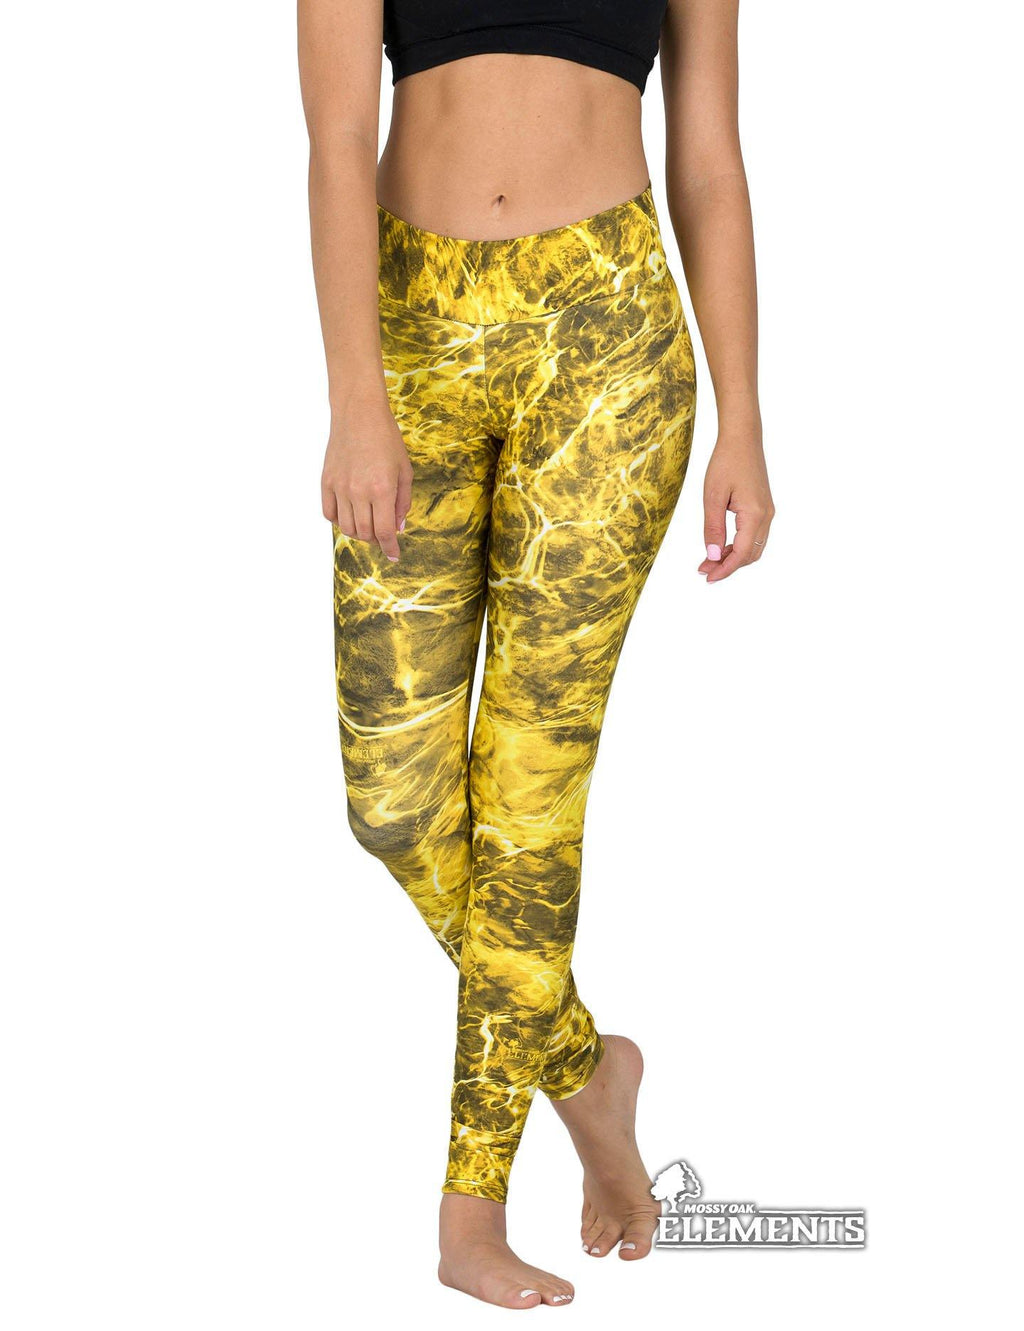 Apsara Leggings Low Waist Full Length, Mossy Oak Elements Yellowfin